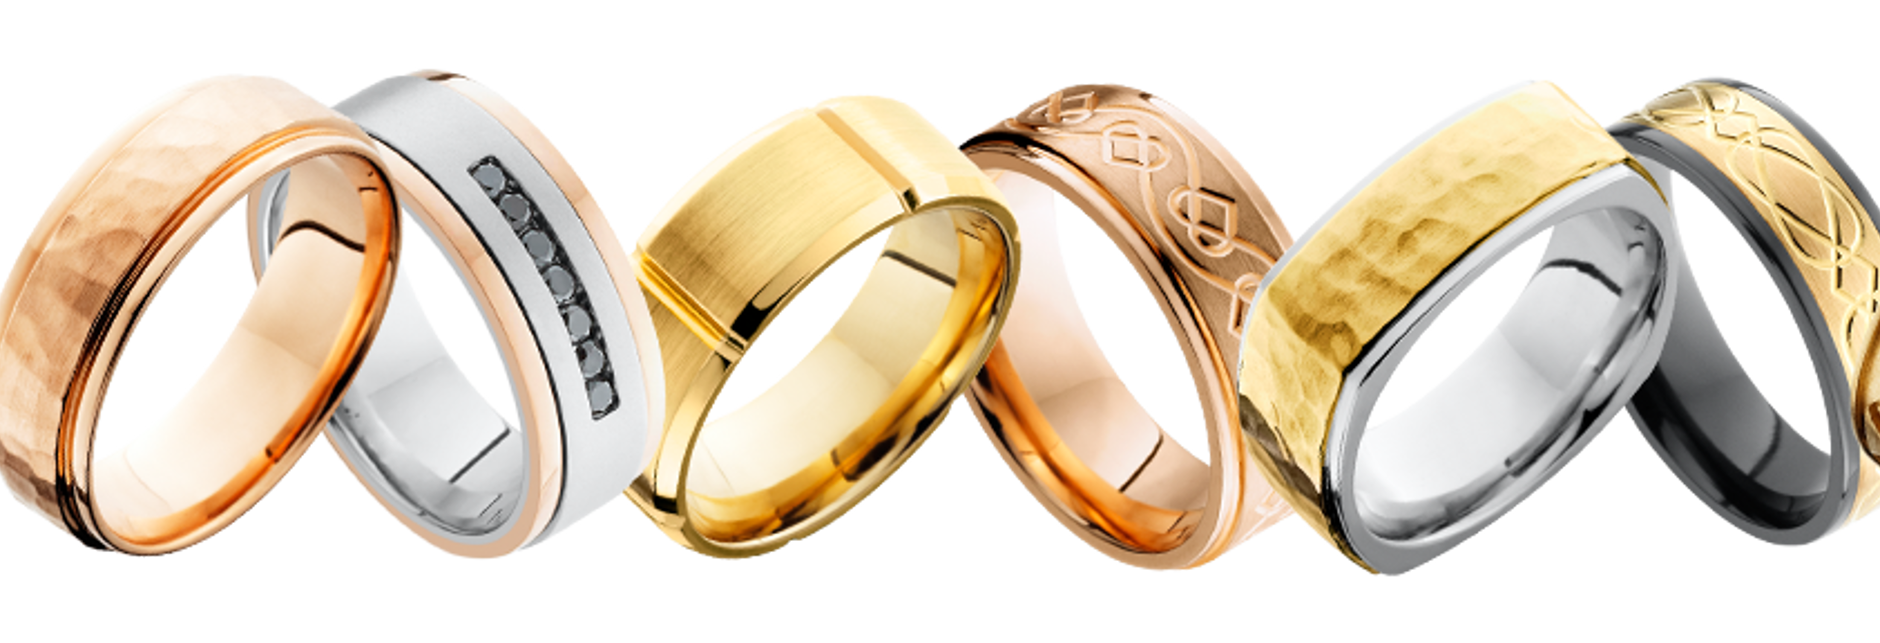 precious-metal-ring-stack.png